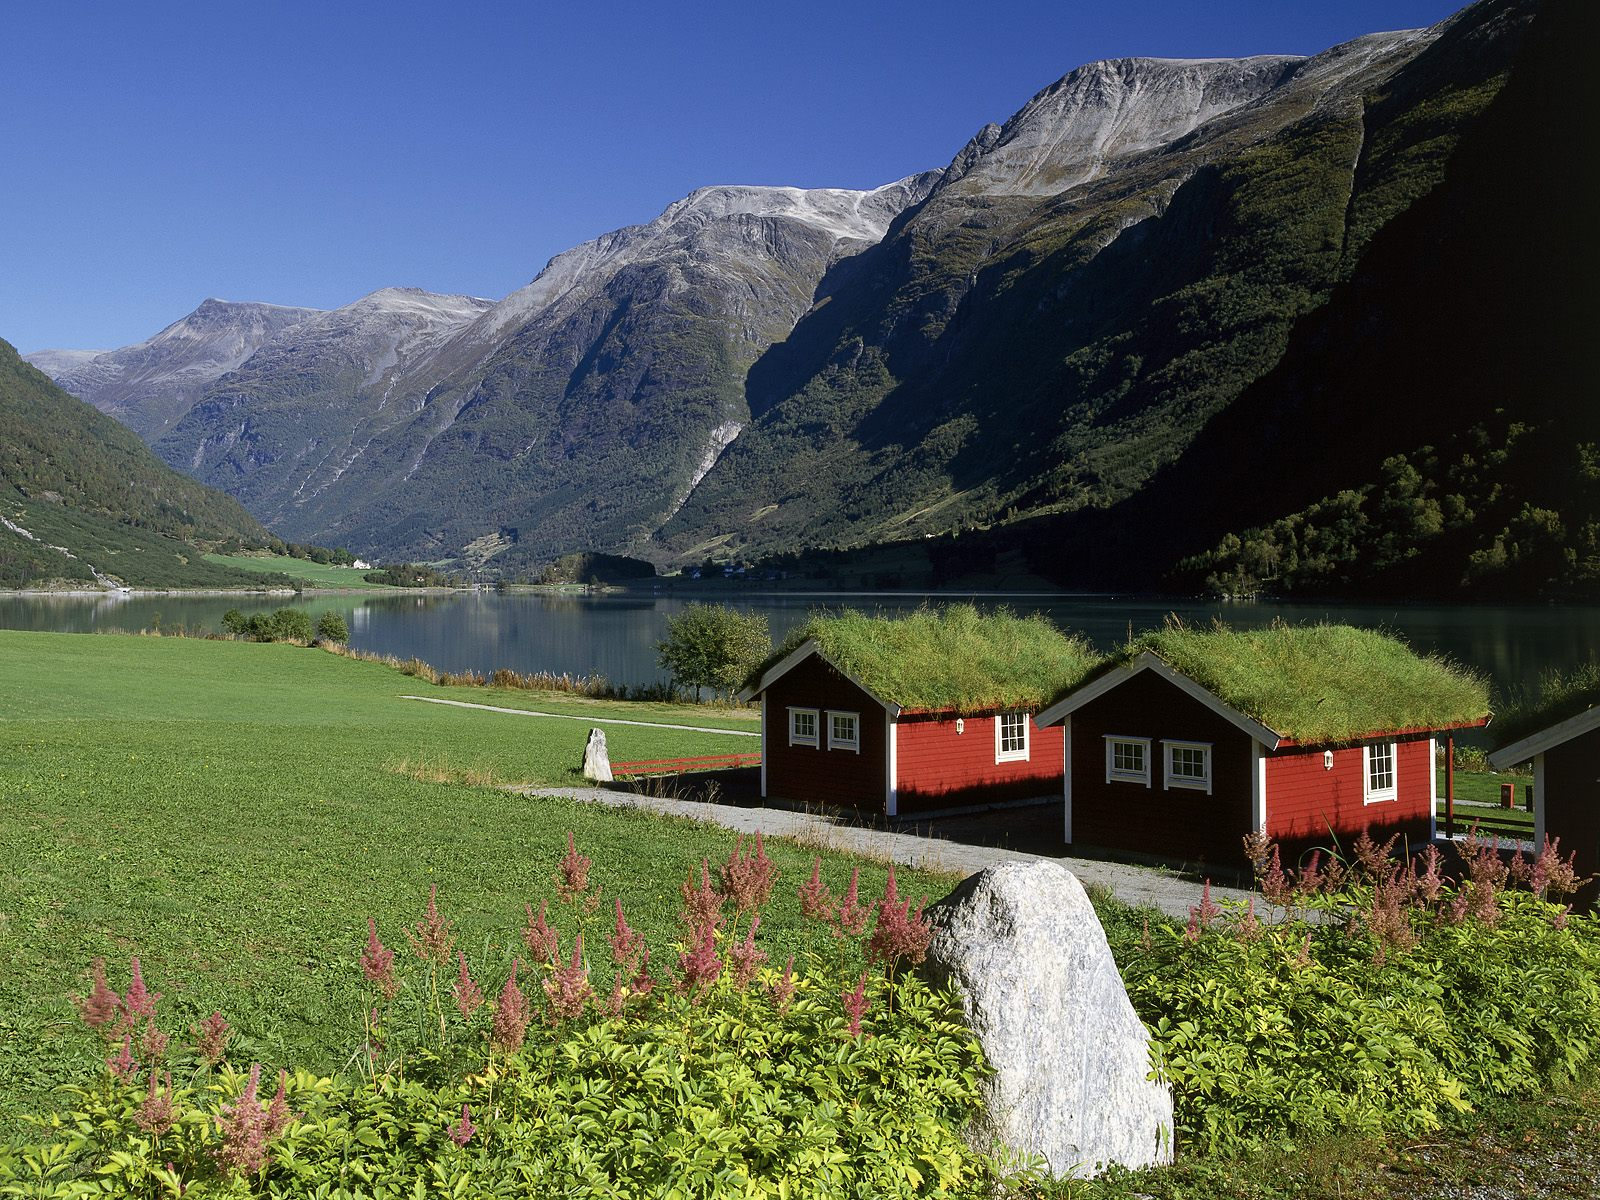 Lakeside Homes Oldenvatnet Norway